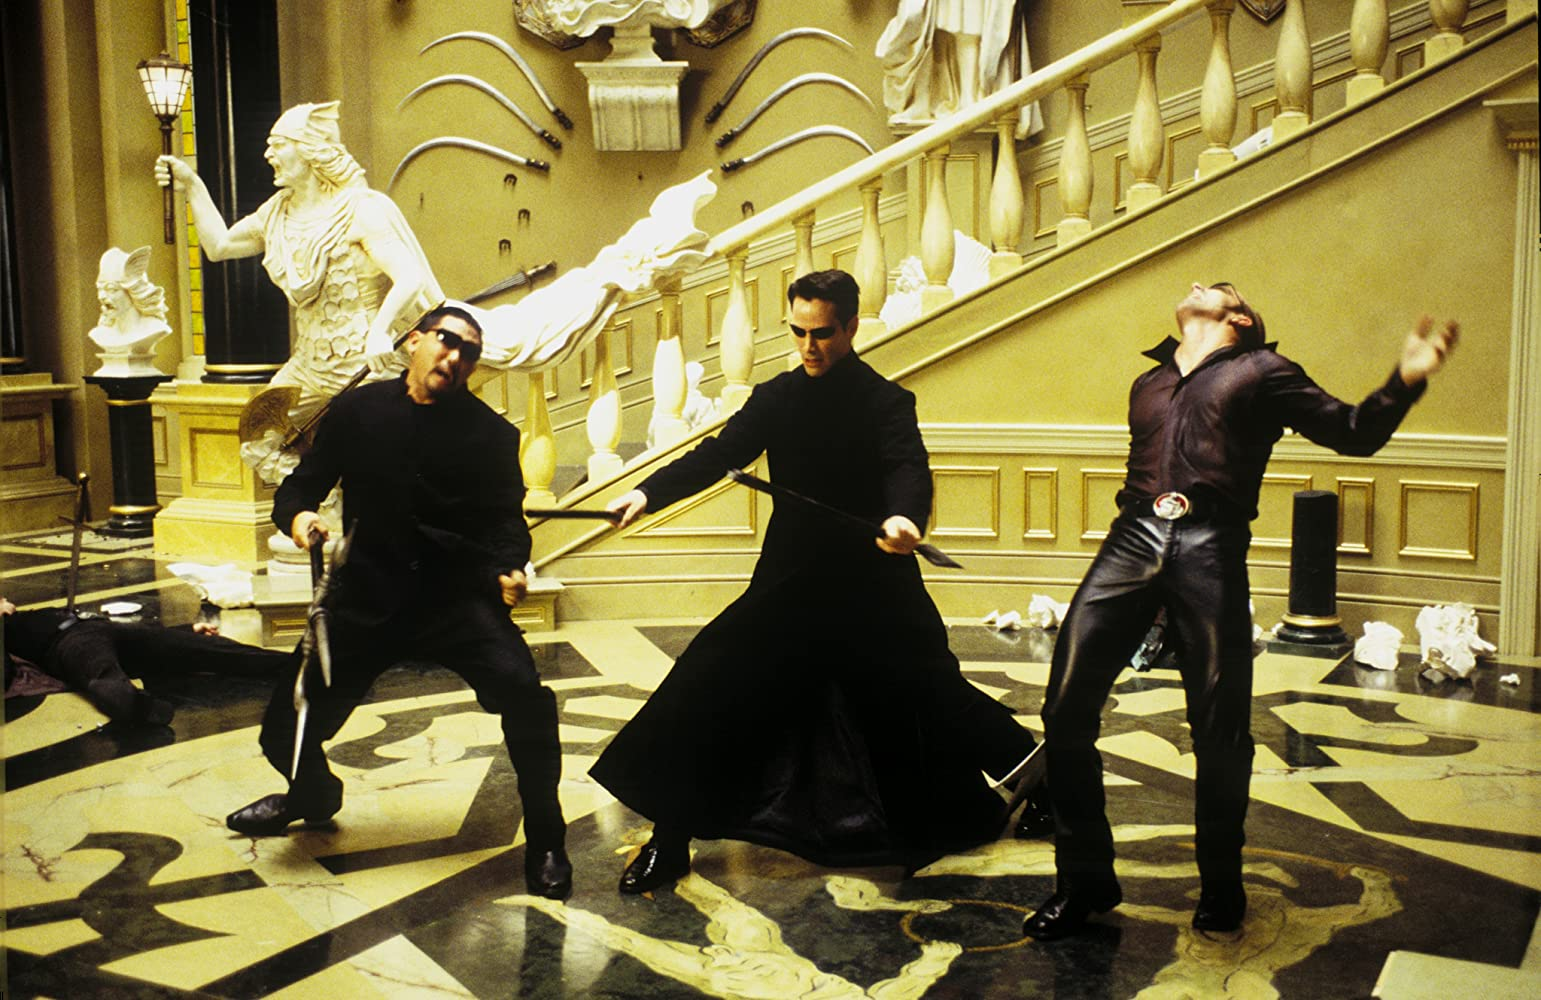 Keanu Reeves and Ousaun Elam in The Matrix Reloaded (2003)